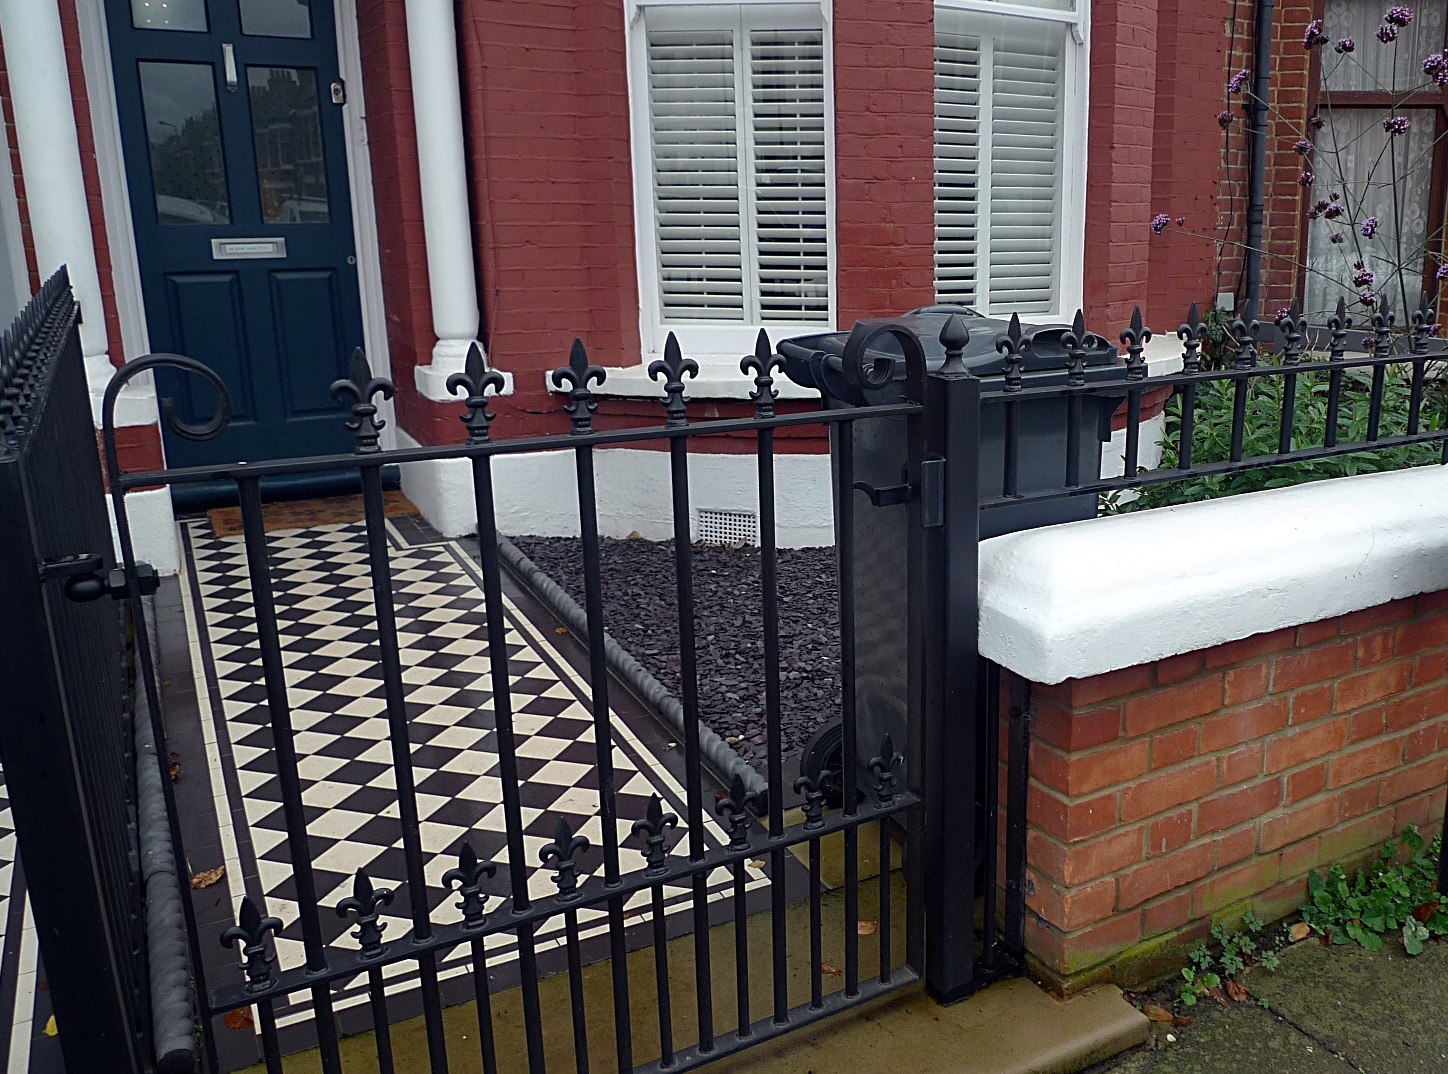 Ornamental stone Victorian mosaic black and white metal gate metal rail charcoal rope edge tiles York stone entrance stone yellow brick Streatham Balham Clapham West Norwood Dulwich London